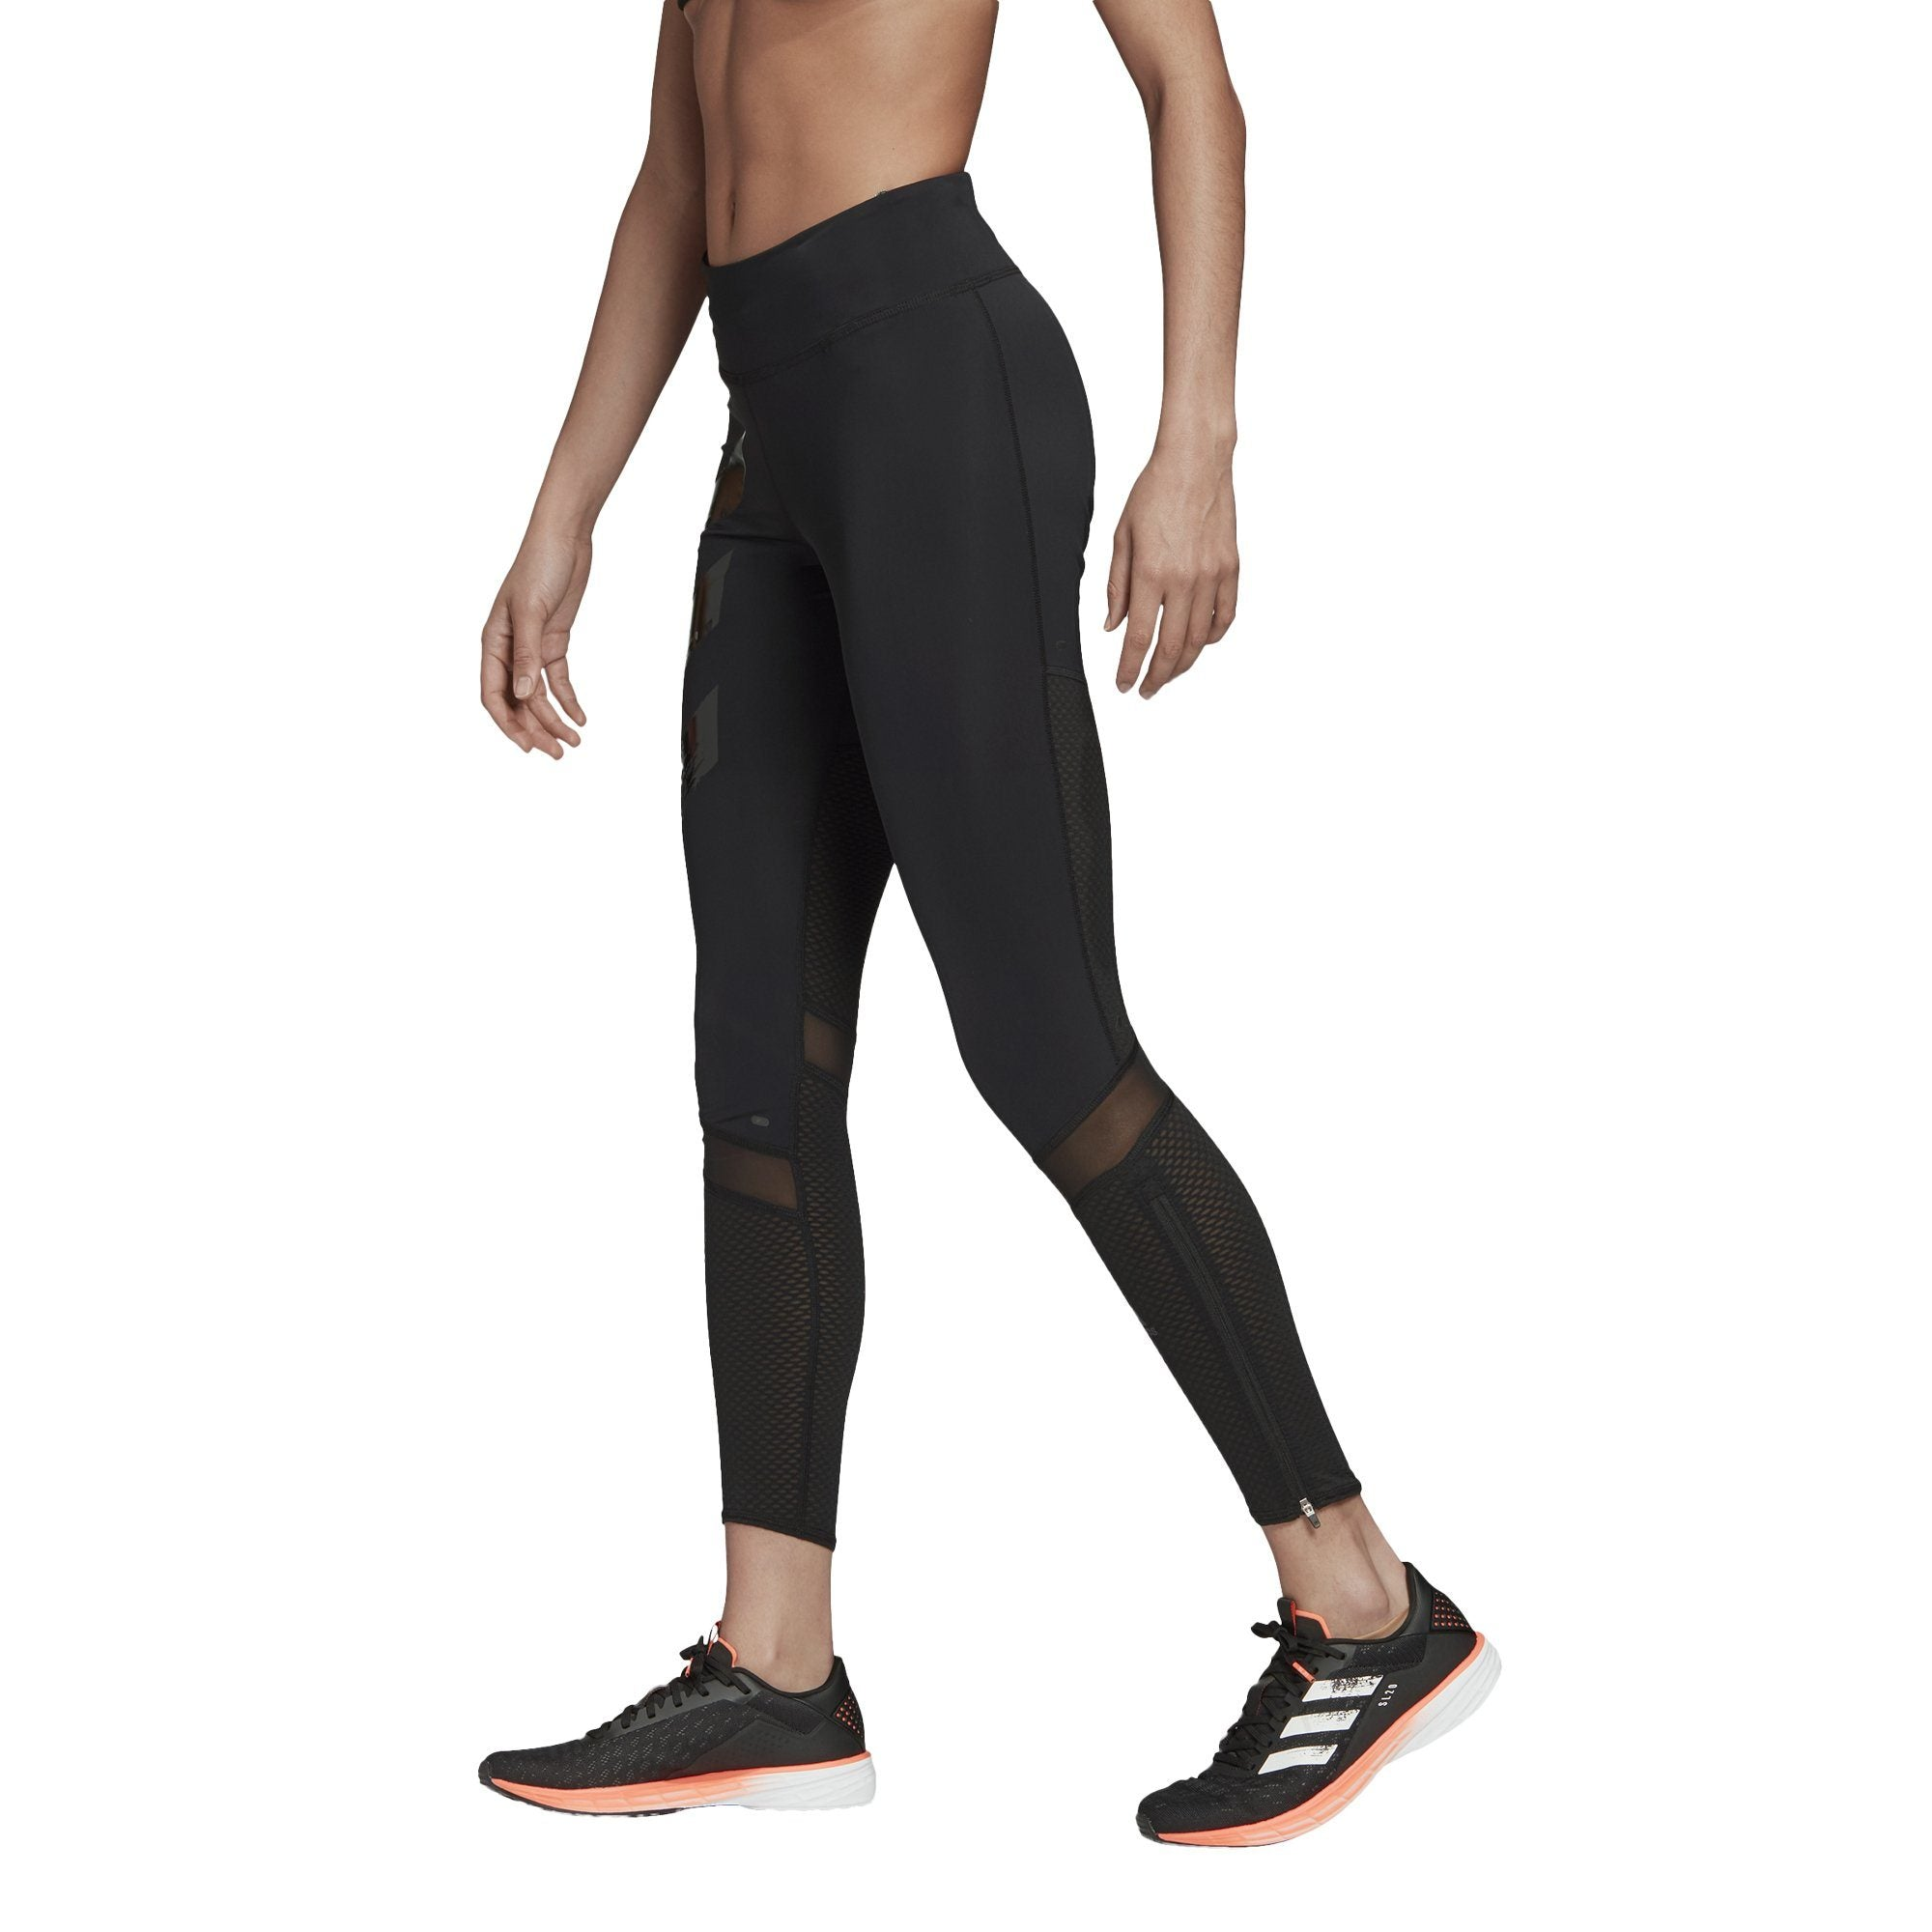 Adidas Womens How We Do Long Tights - black SP-ApparelTights-Womens Adidas